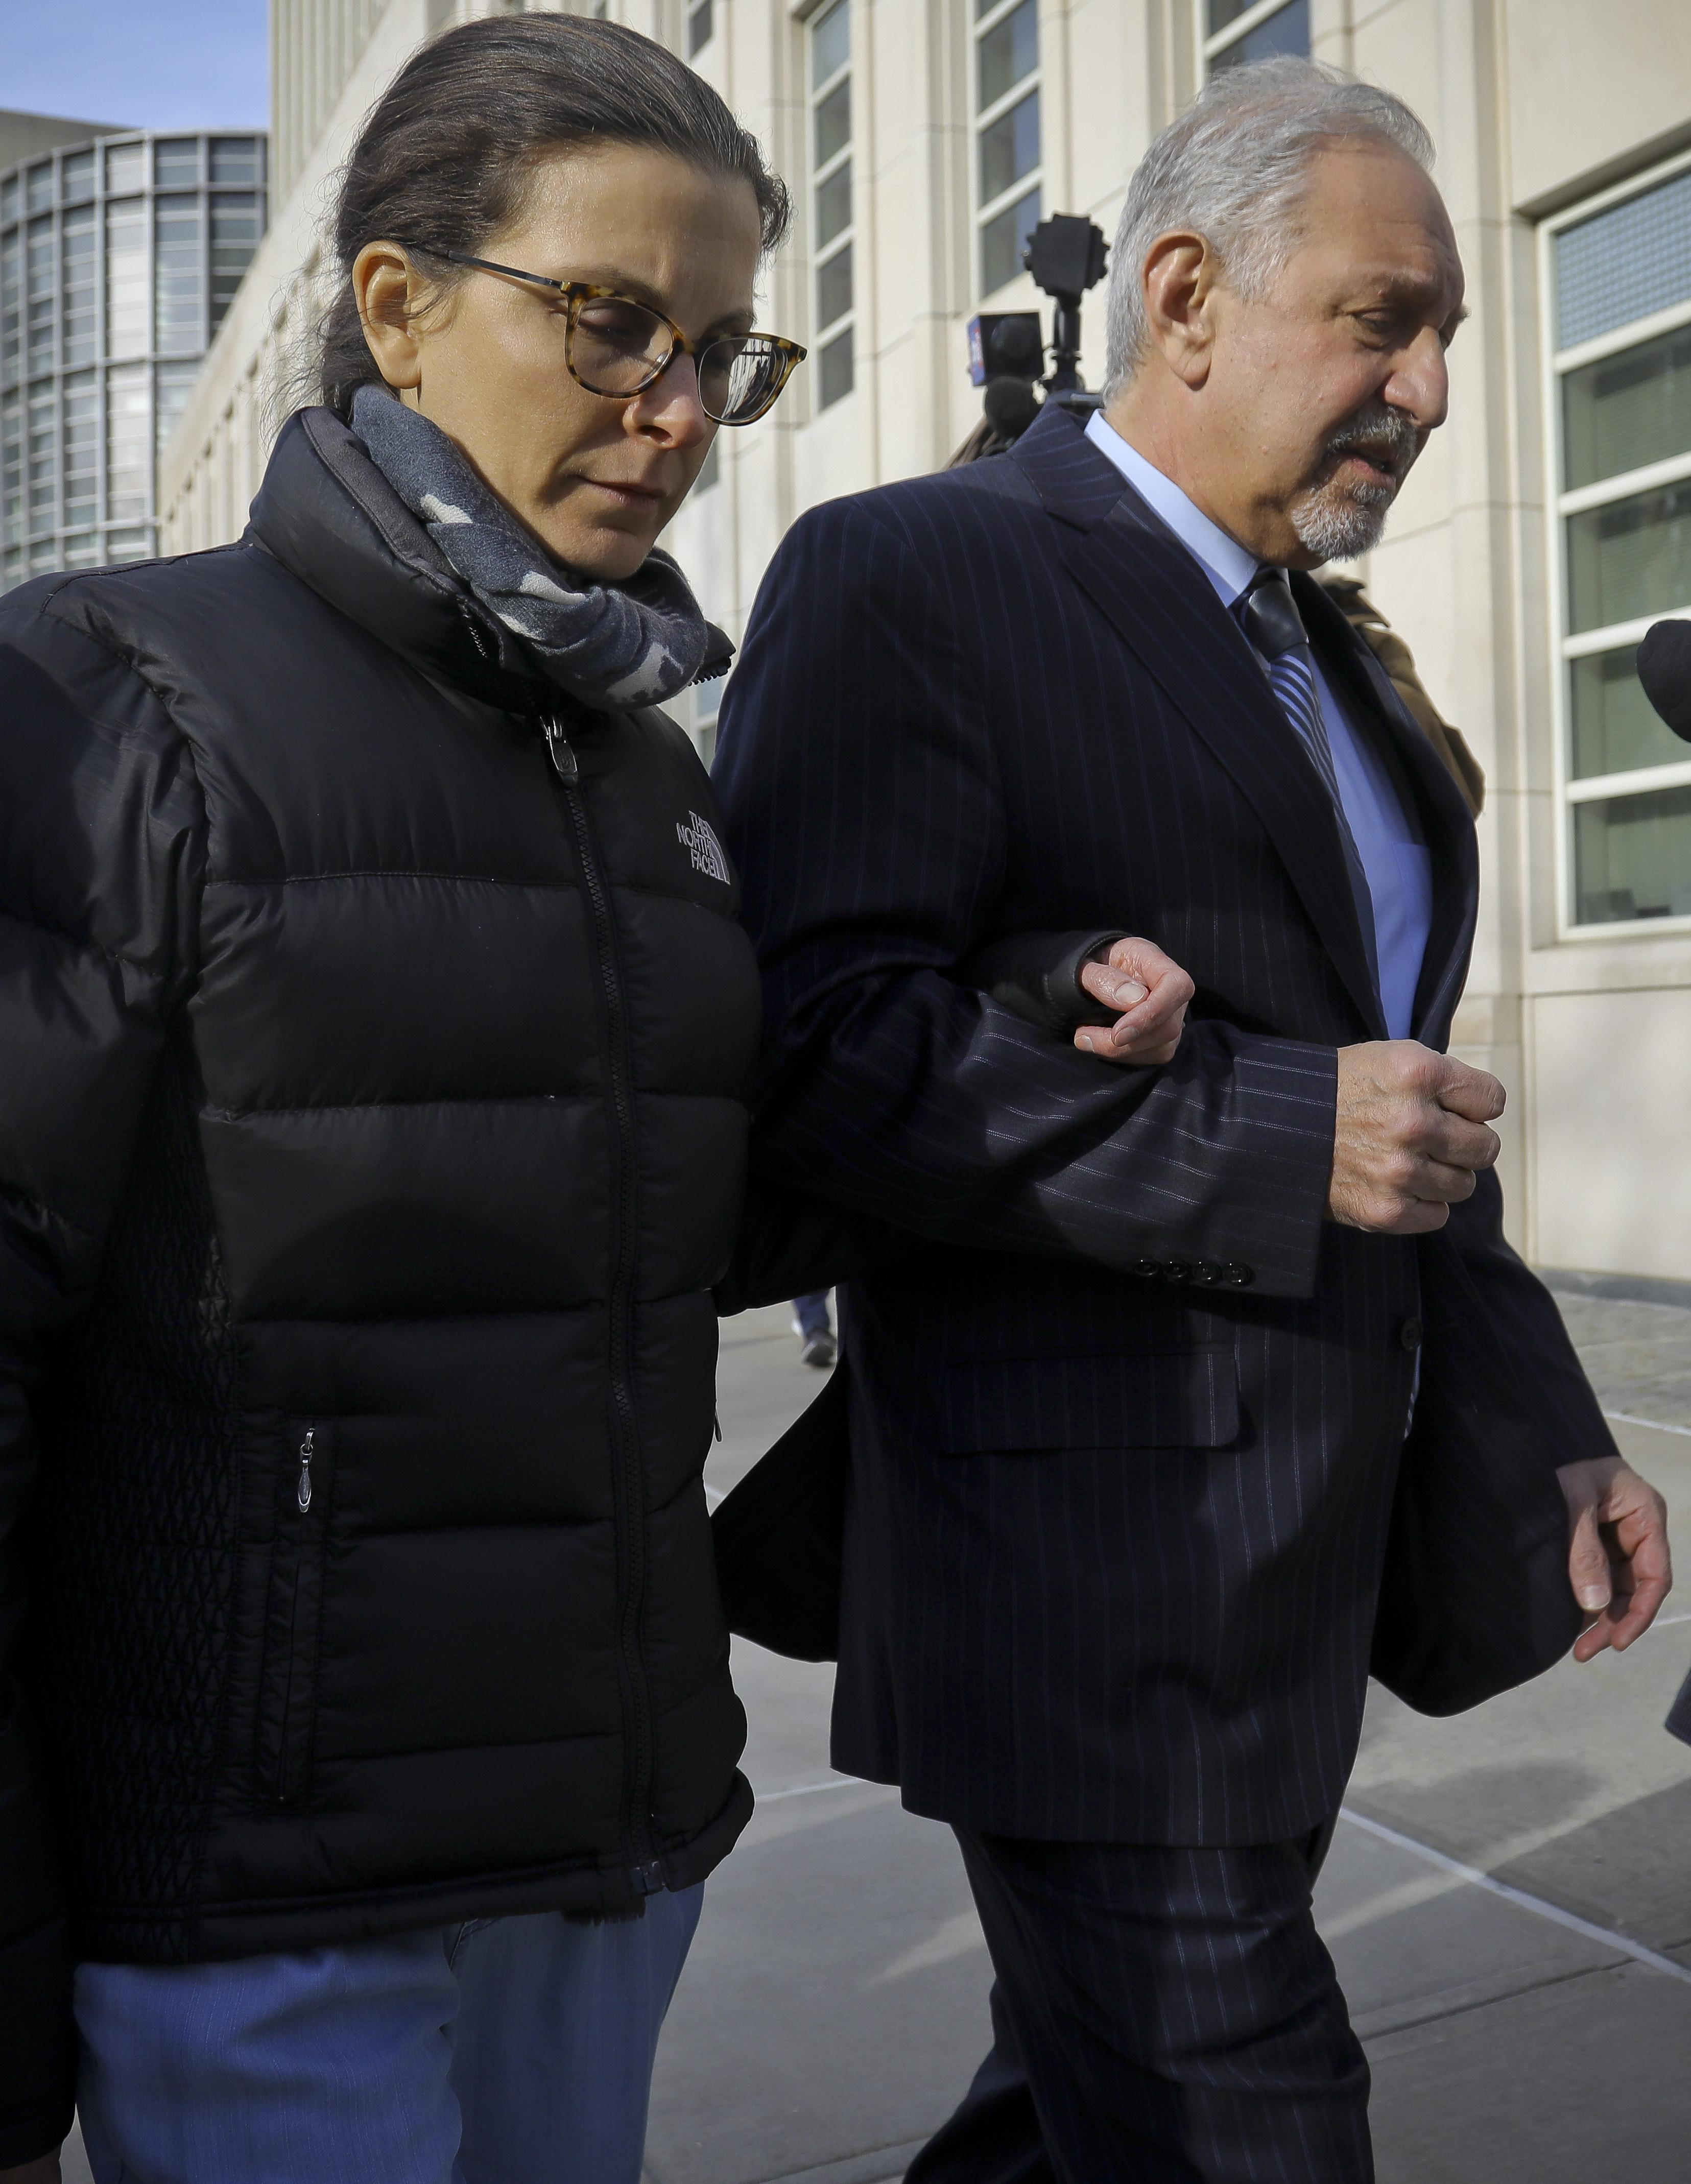 Clare Bronfman leaves Brooklyn Federal Court with lawyer Mark Geragos